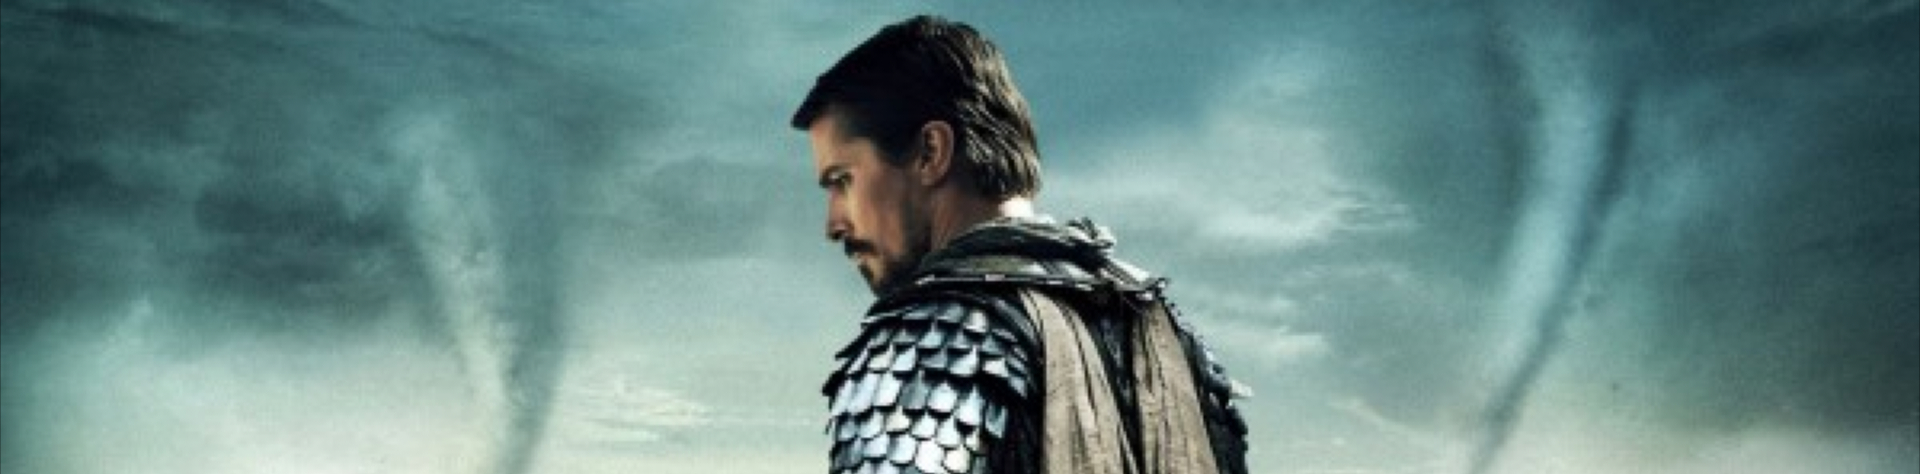 exodus-gods-and-kings-main